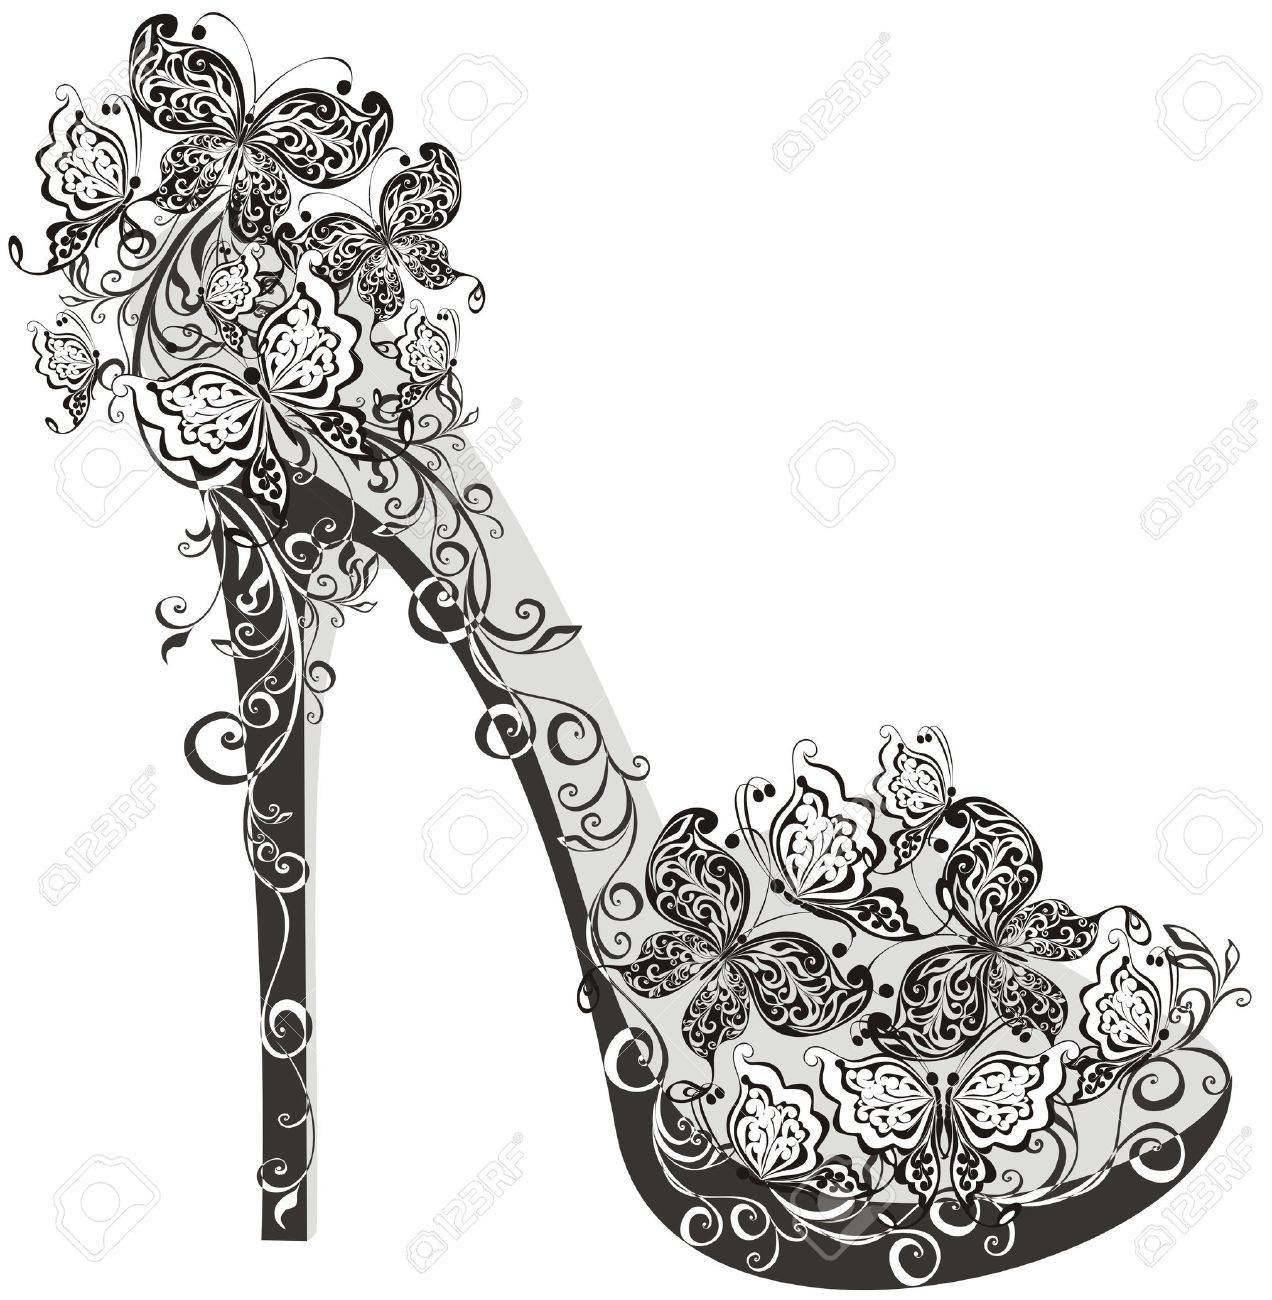 Shoes on a high heel decorated with flowers and butterflies Stock Vector - 16468209